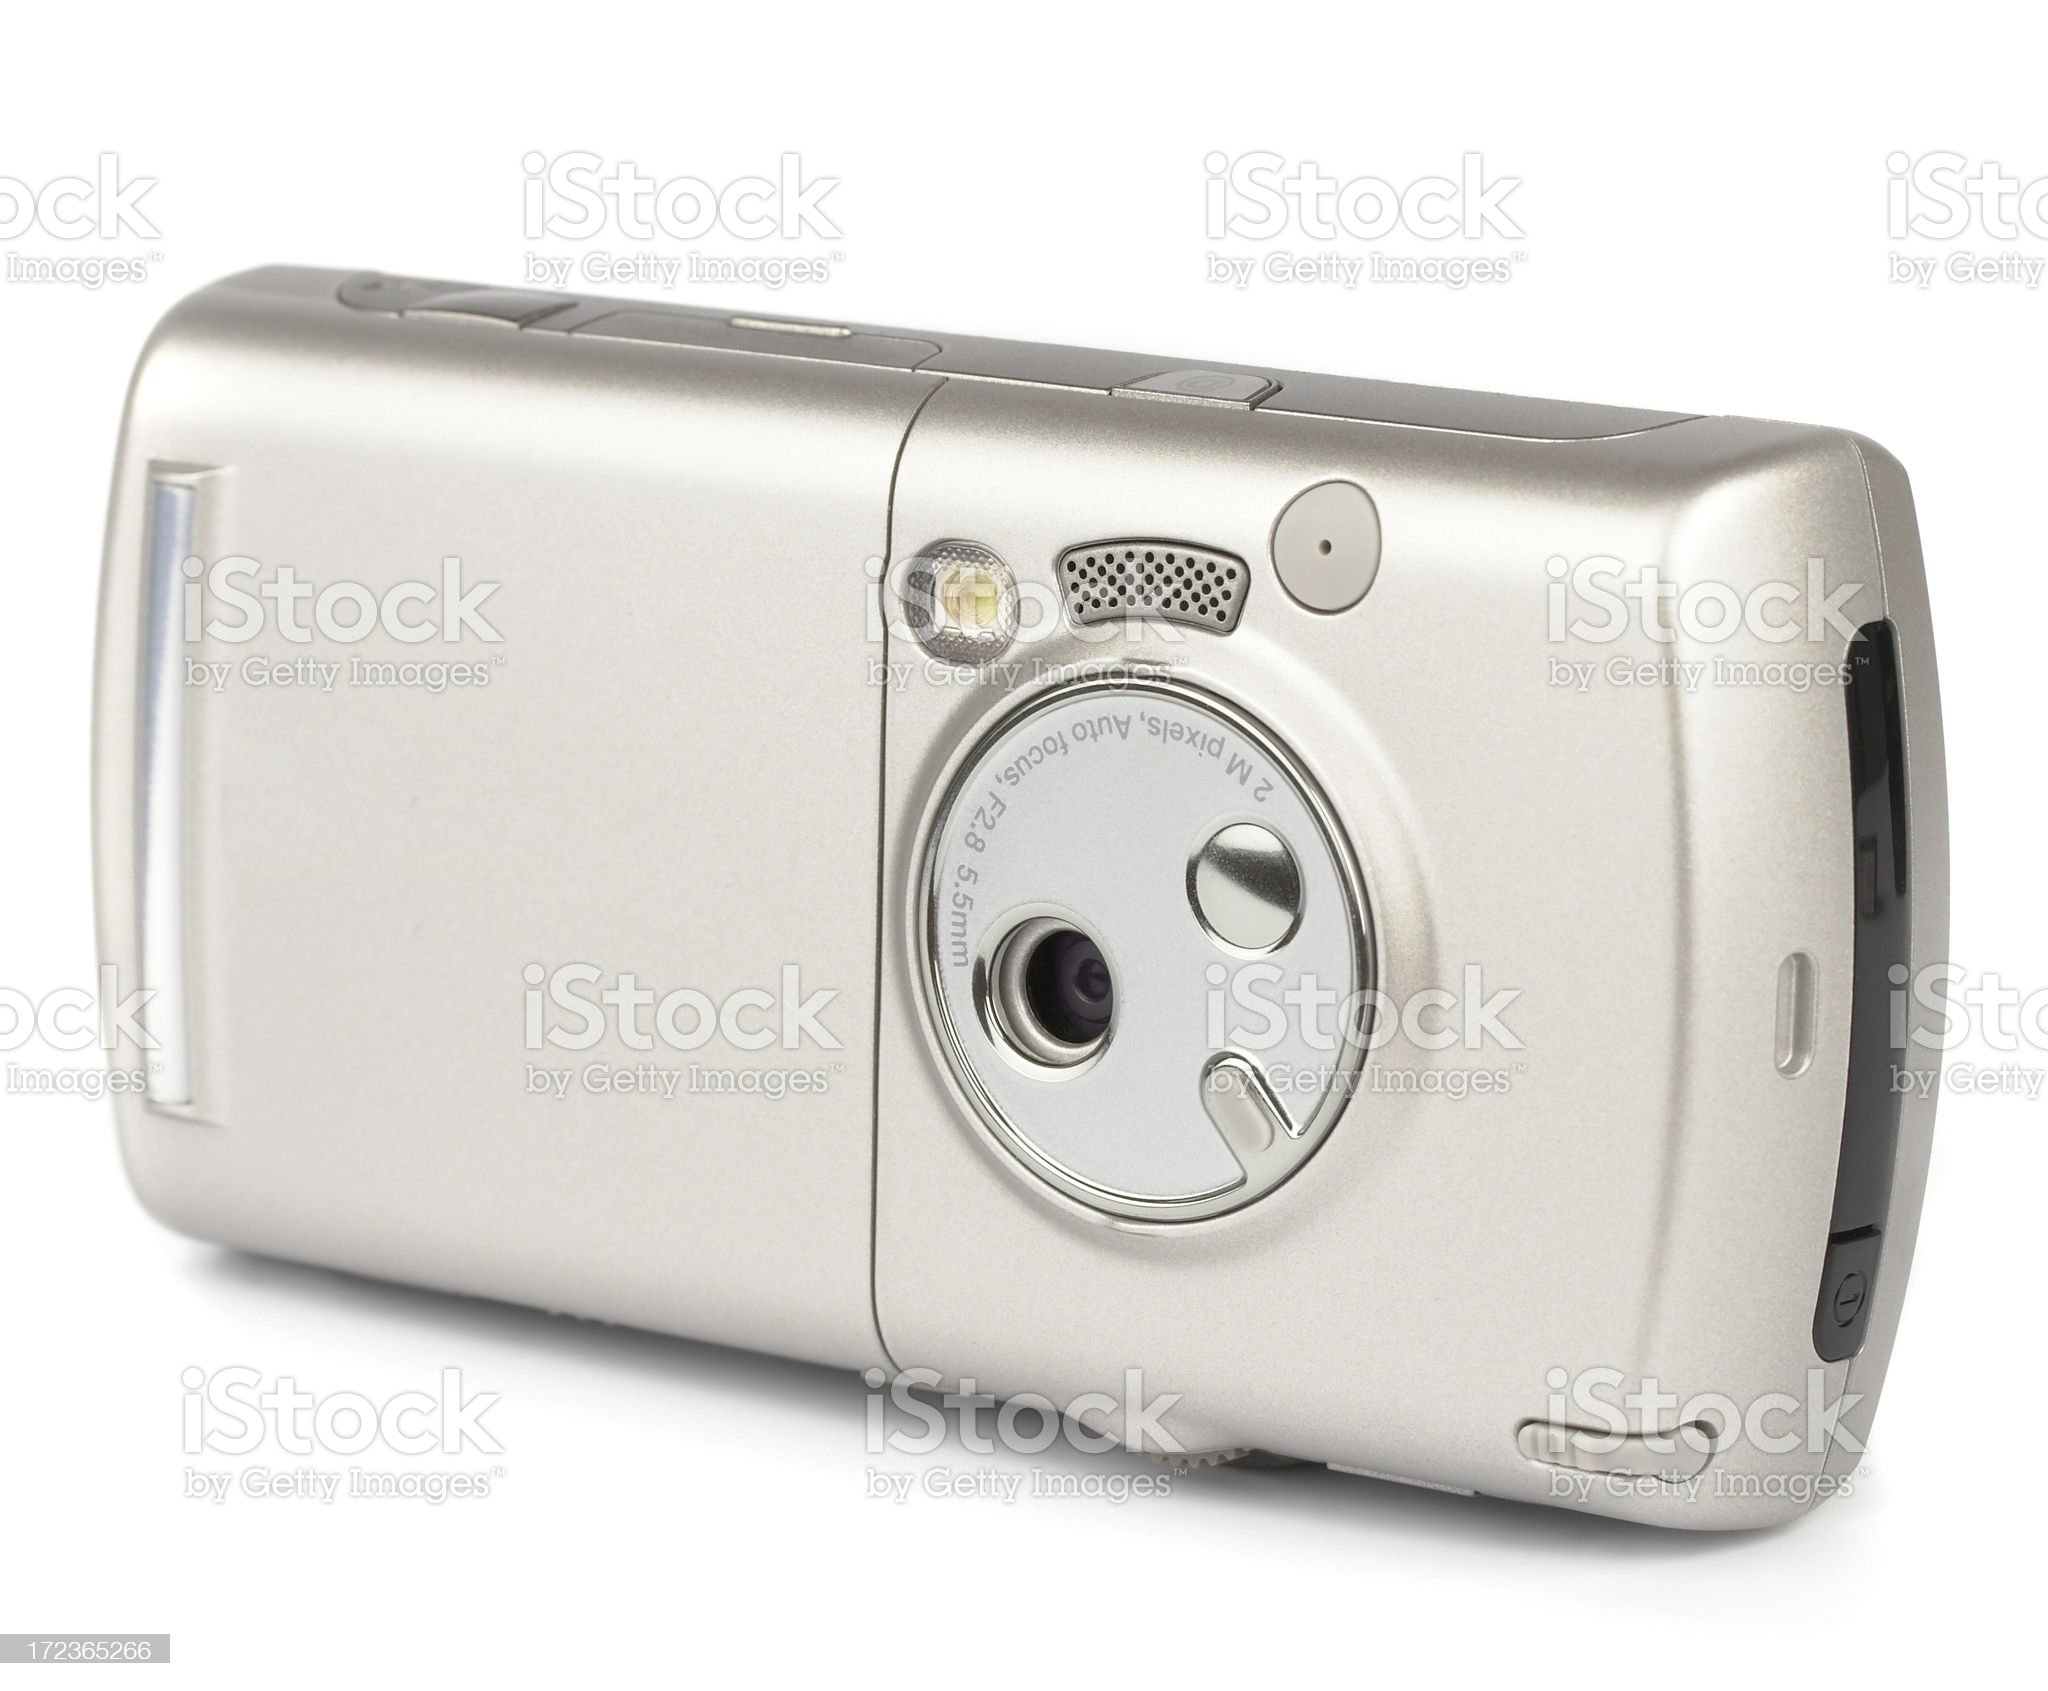 Hi-Tech PDA mobile phone with camera, isolated on white background royalty-free stock photo